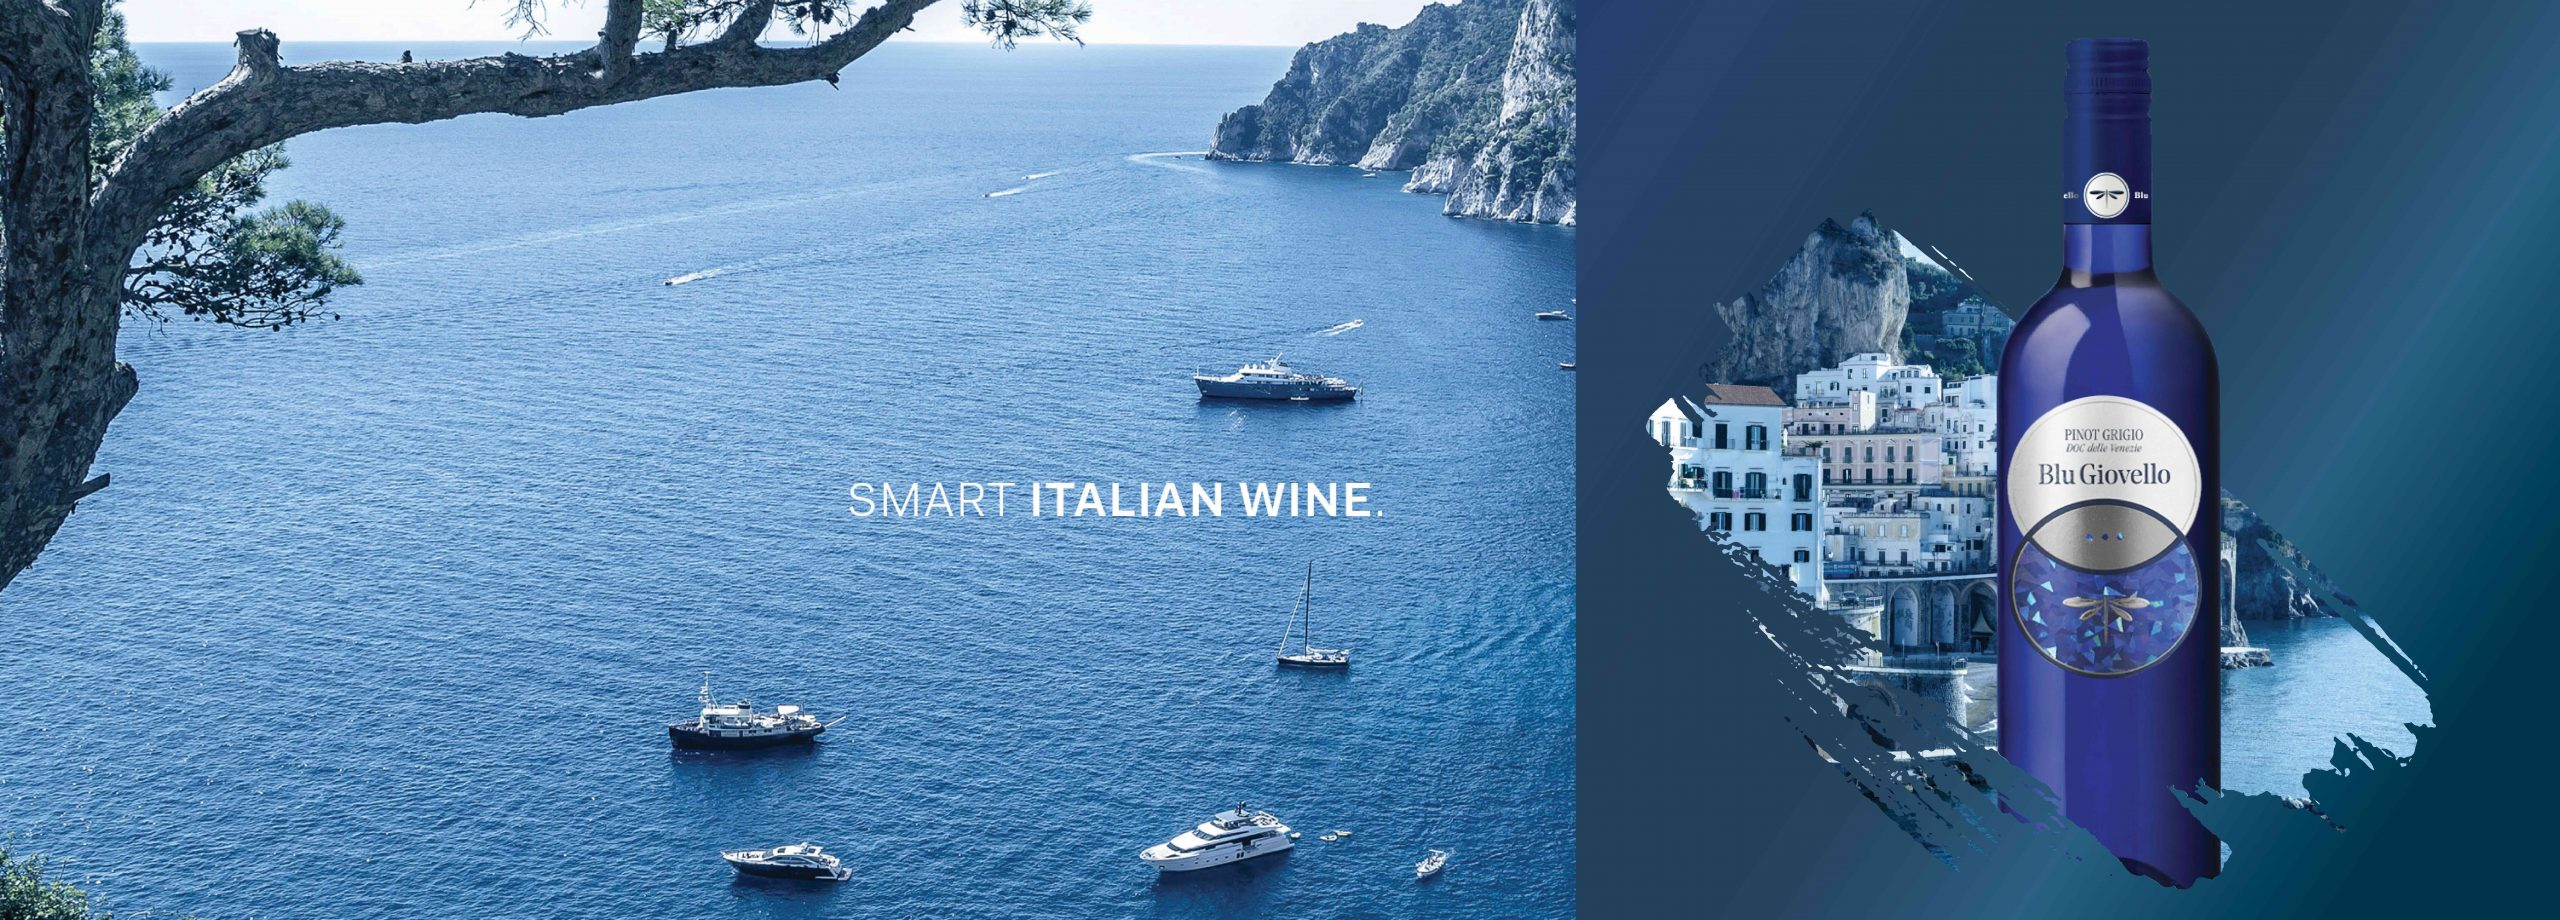 Blu Giovello - A new brand identity to tell the the wide horizons of the Italian sky and the taste of its wines.